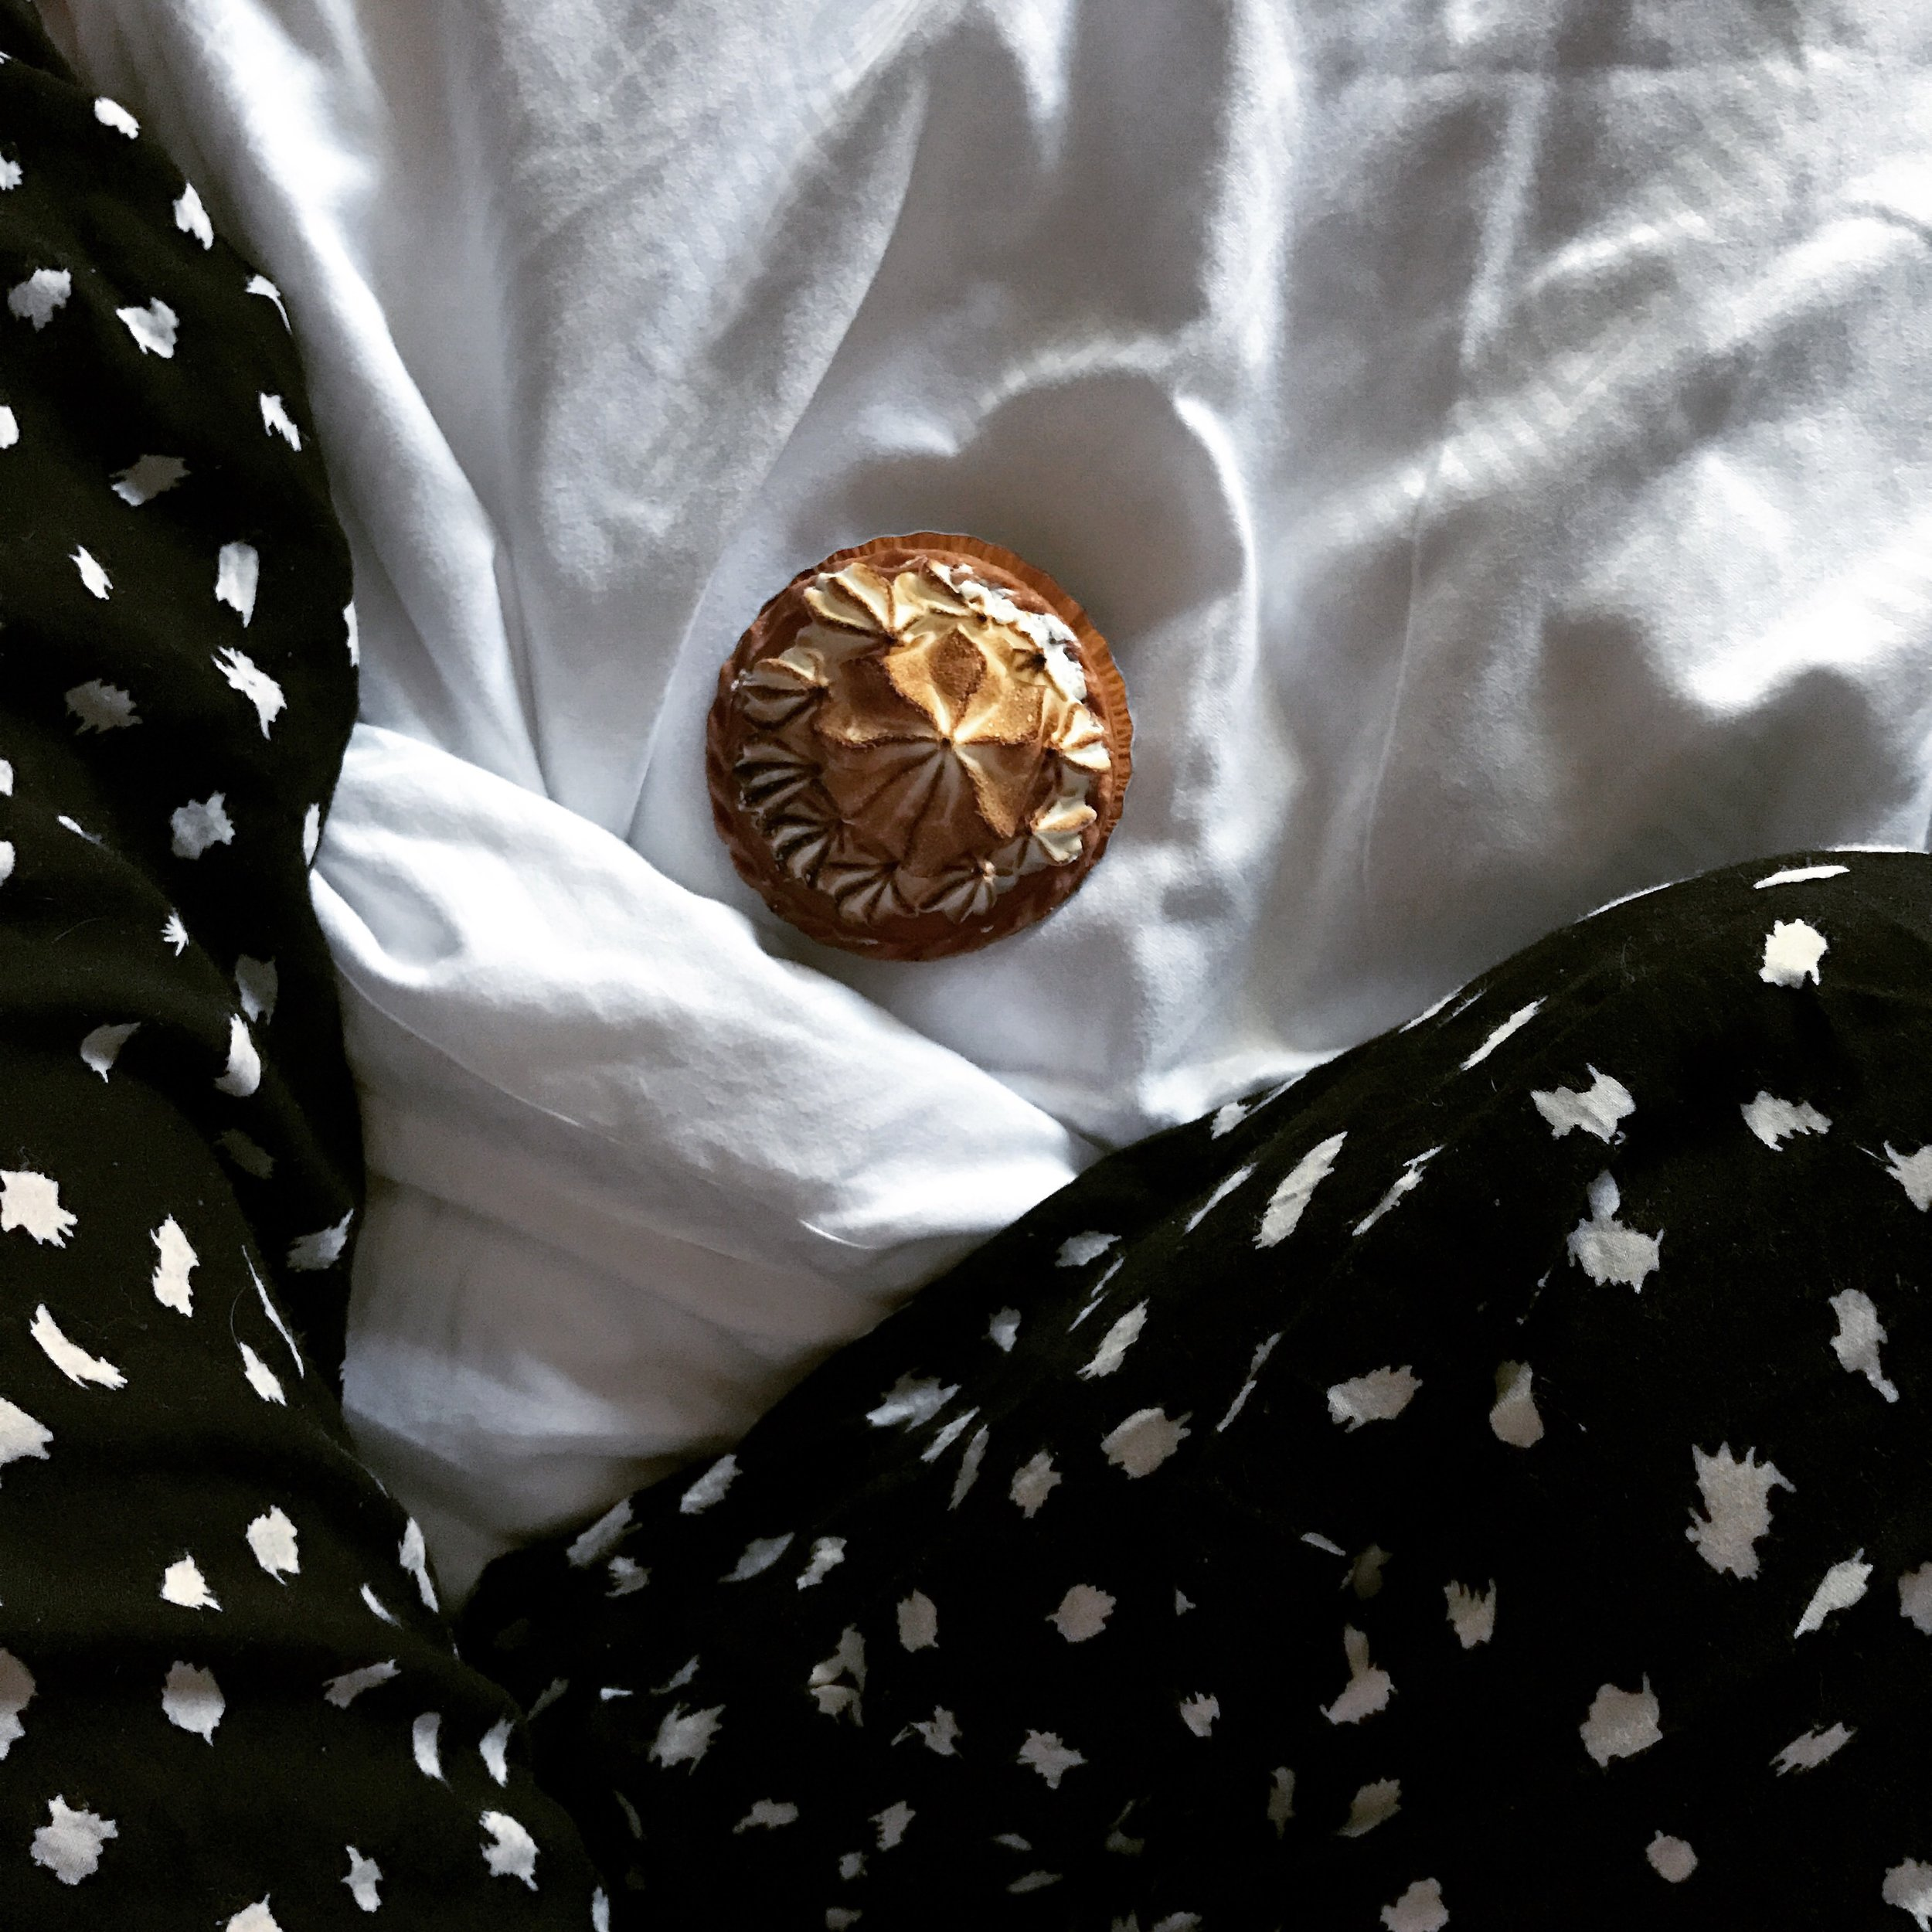 Sudara pants were my loungewear of choice during mornings and evenings at our hotel. See a full review of them  here .